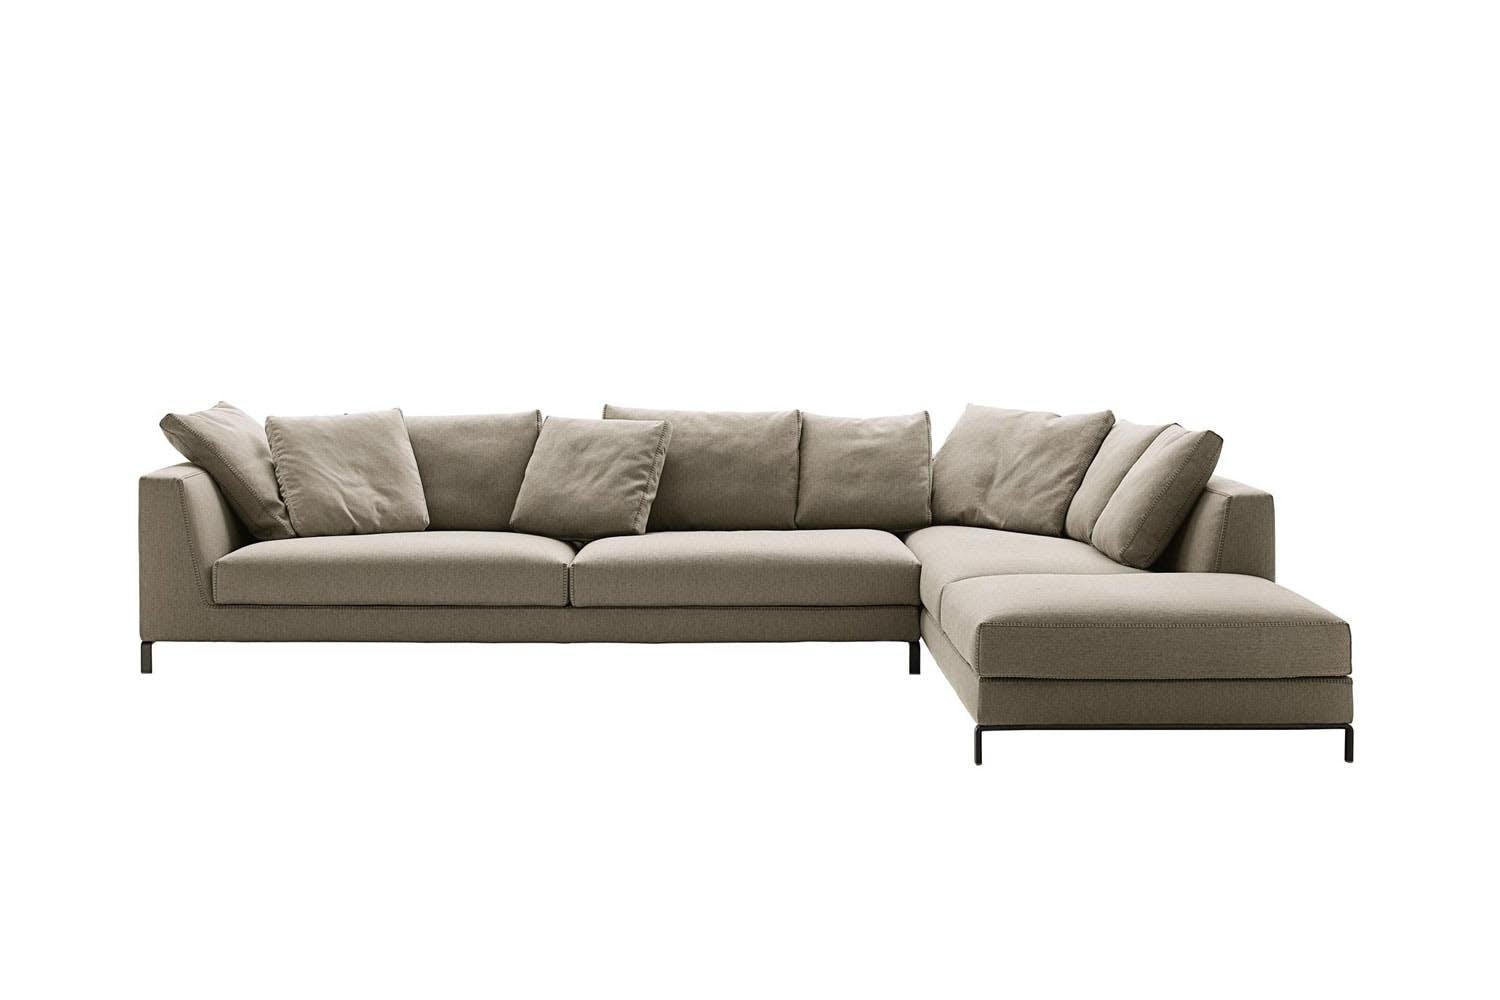 Ray sofa by antonio citterio for b b italia space furniture - Sofa gratis ...